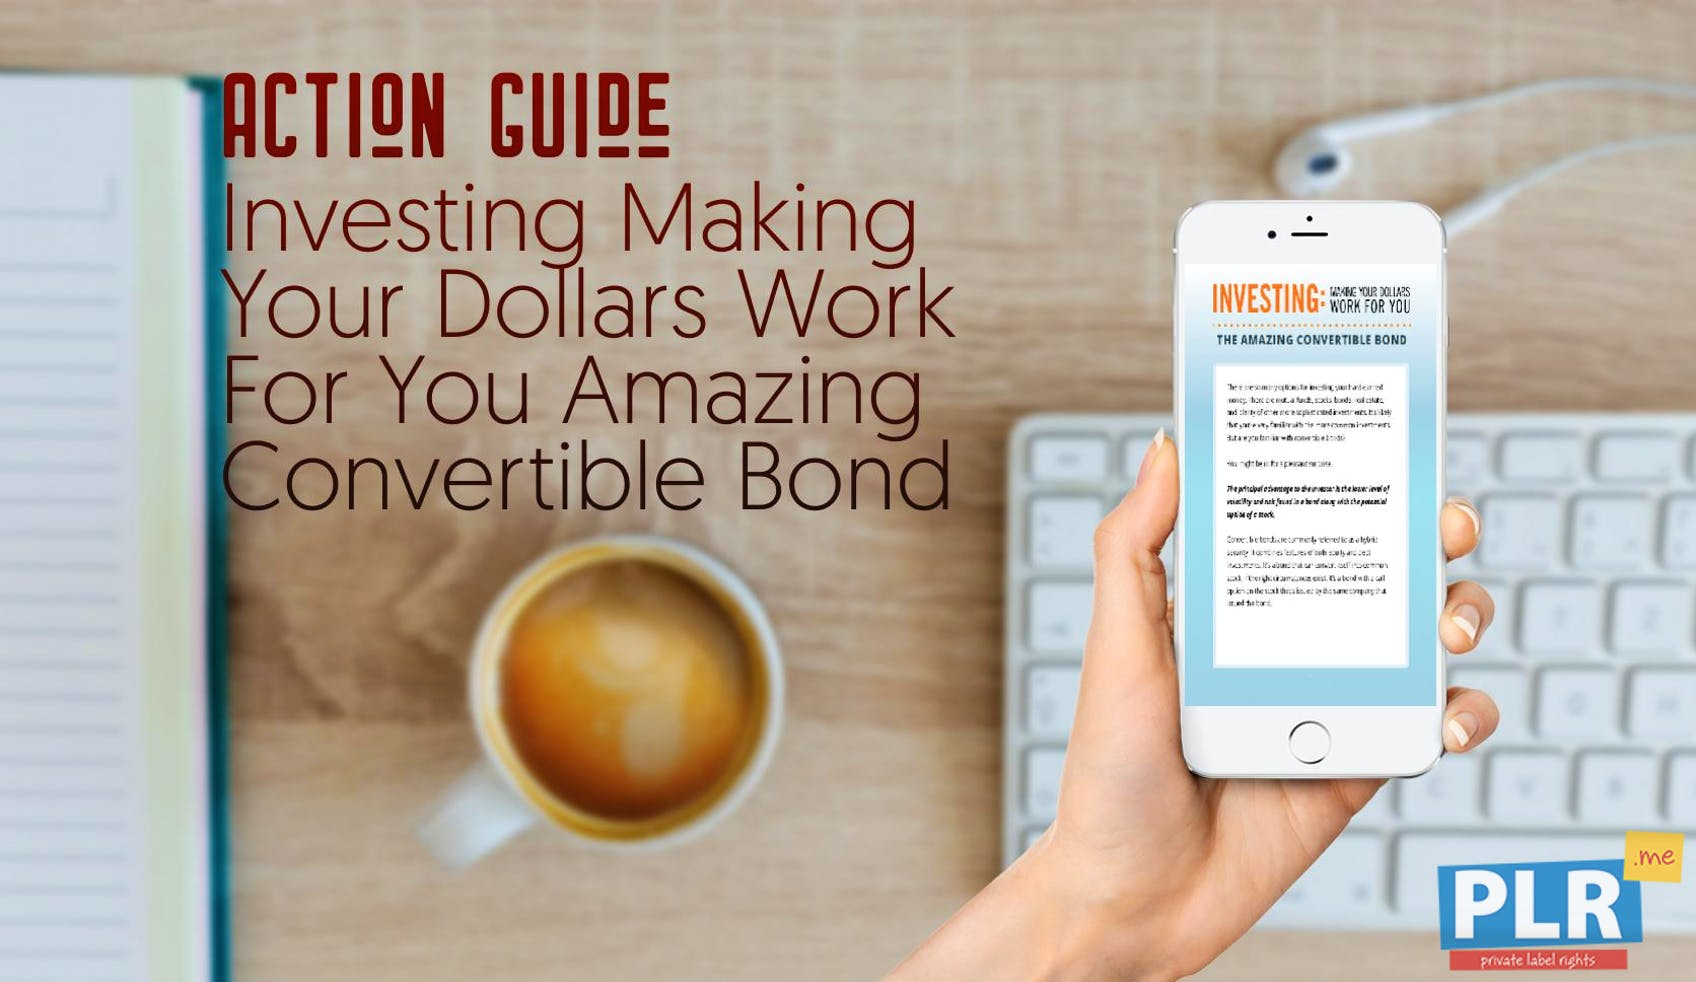 Investing Making Your Dollars Work For You Amazing Convertible Bond